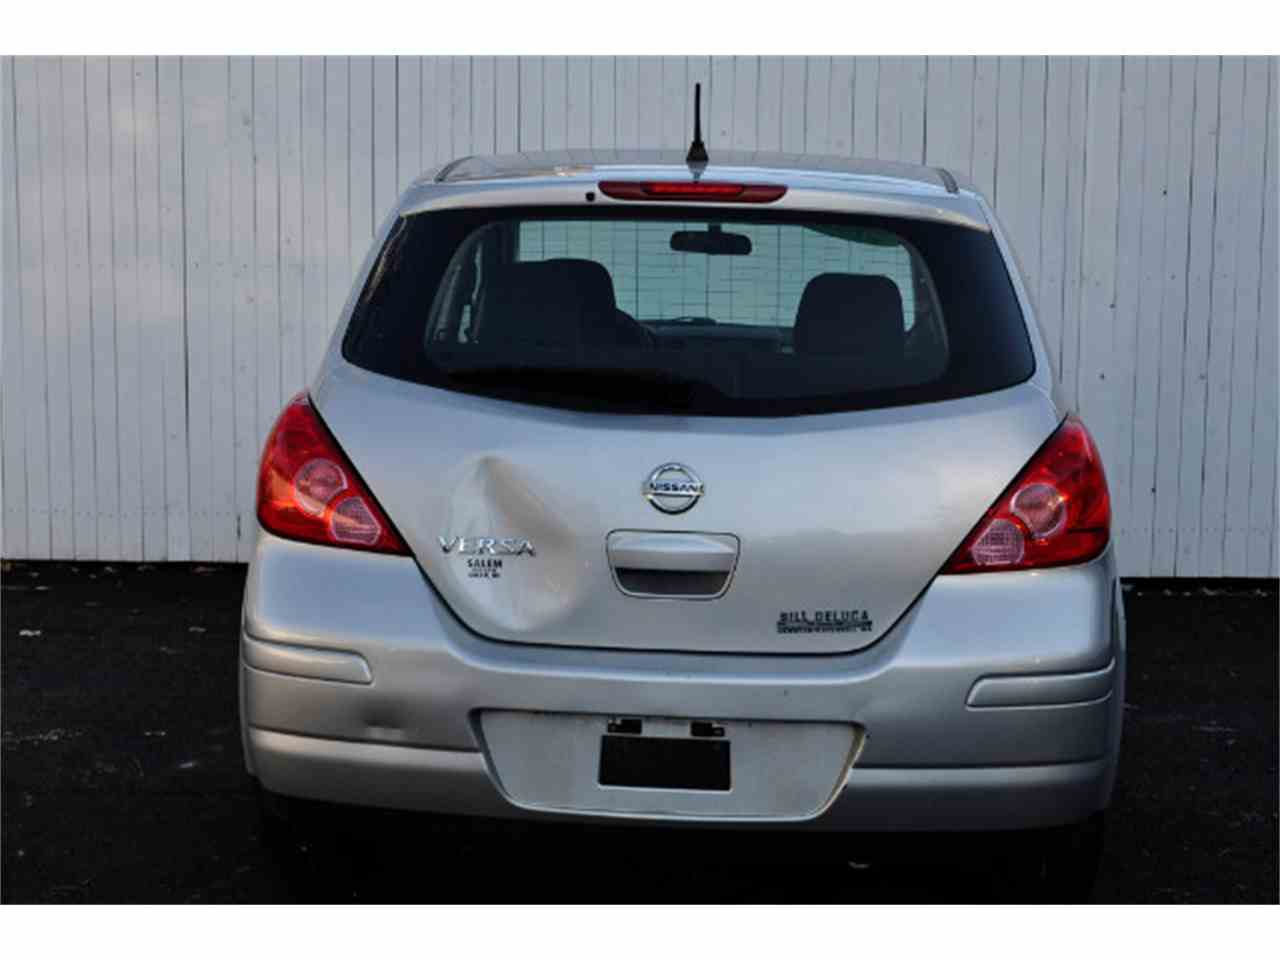 Large Picture of 2011 Versa located in Milford New Hampshire - $3,995.00 - MDL5